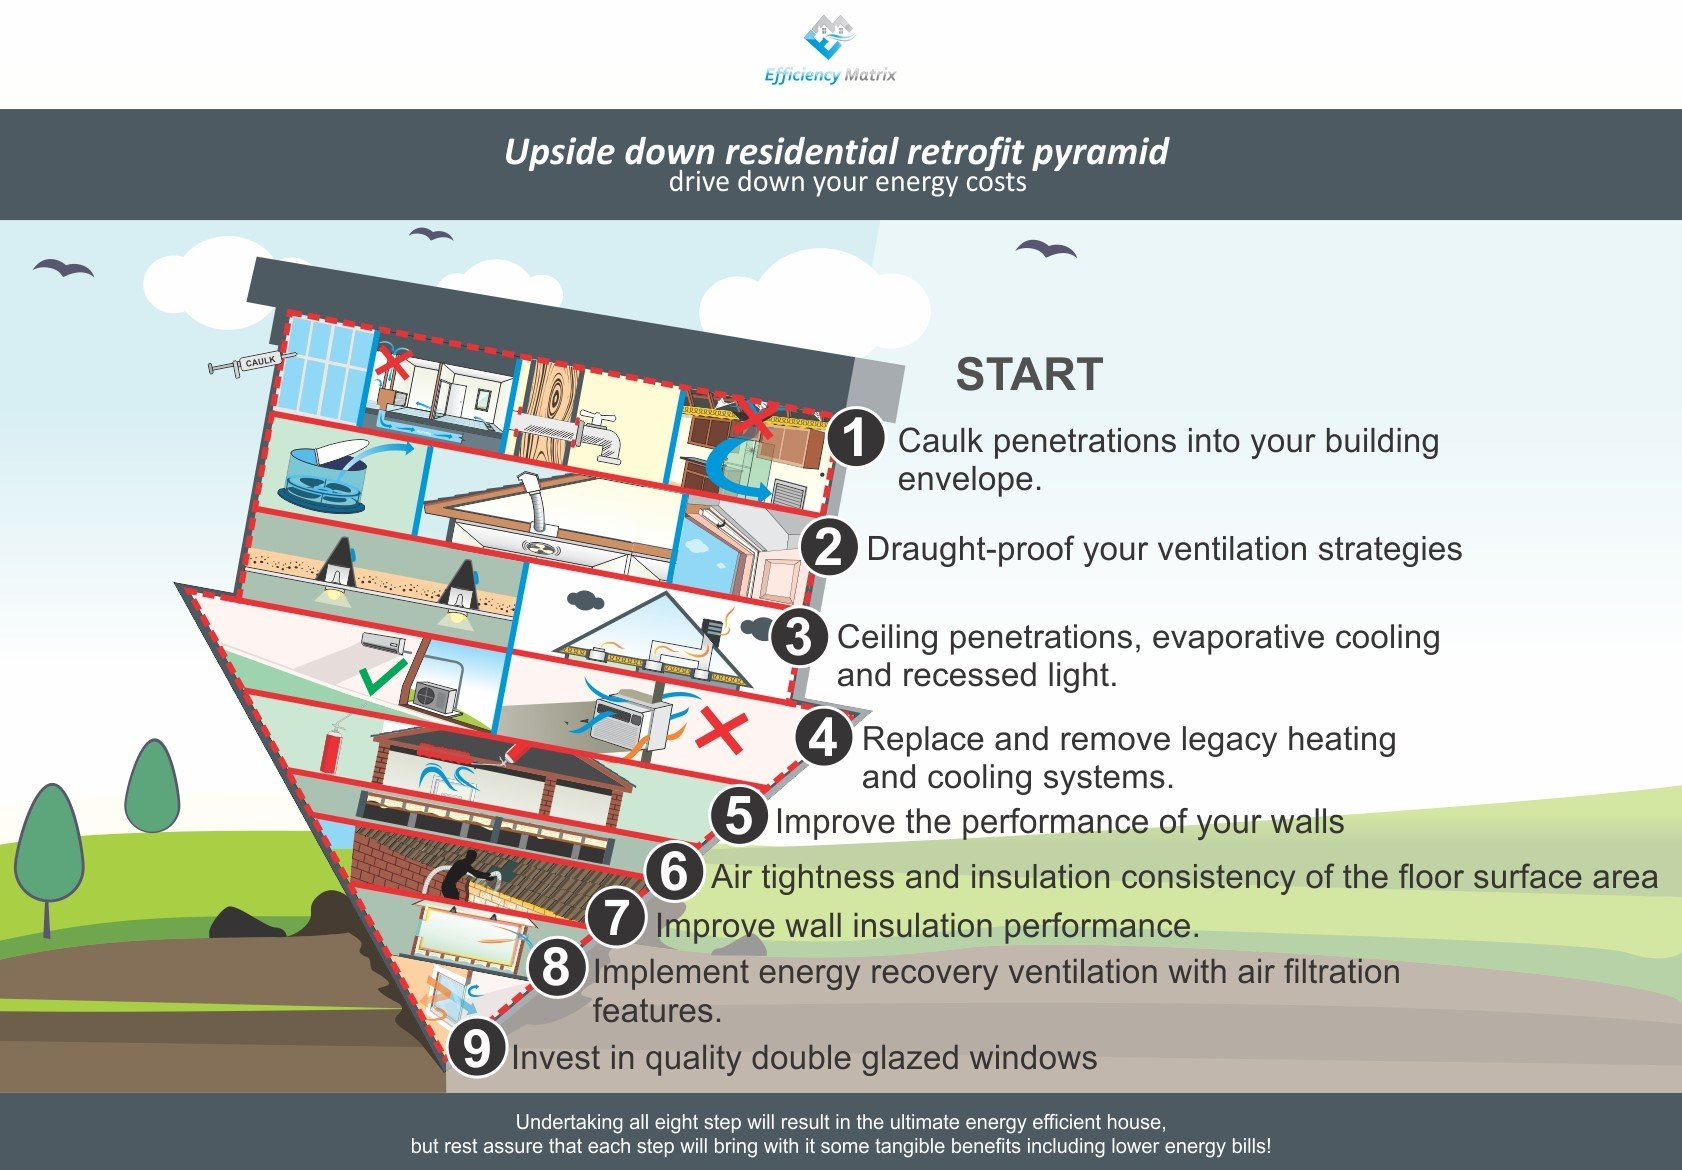 Improving the performance of your building envelope.